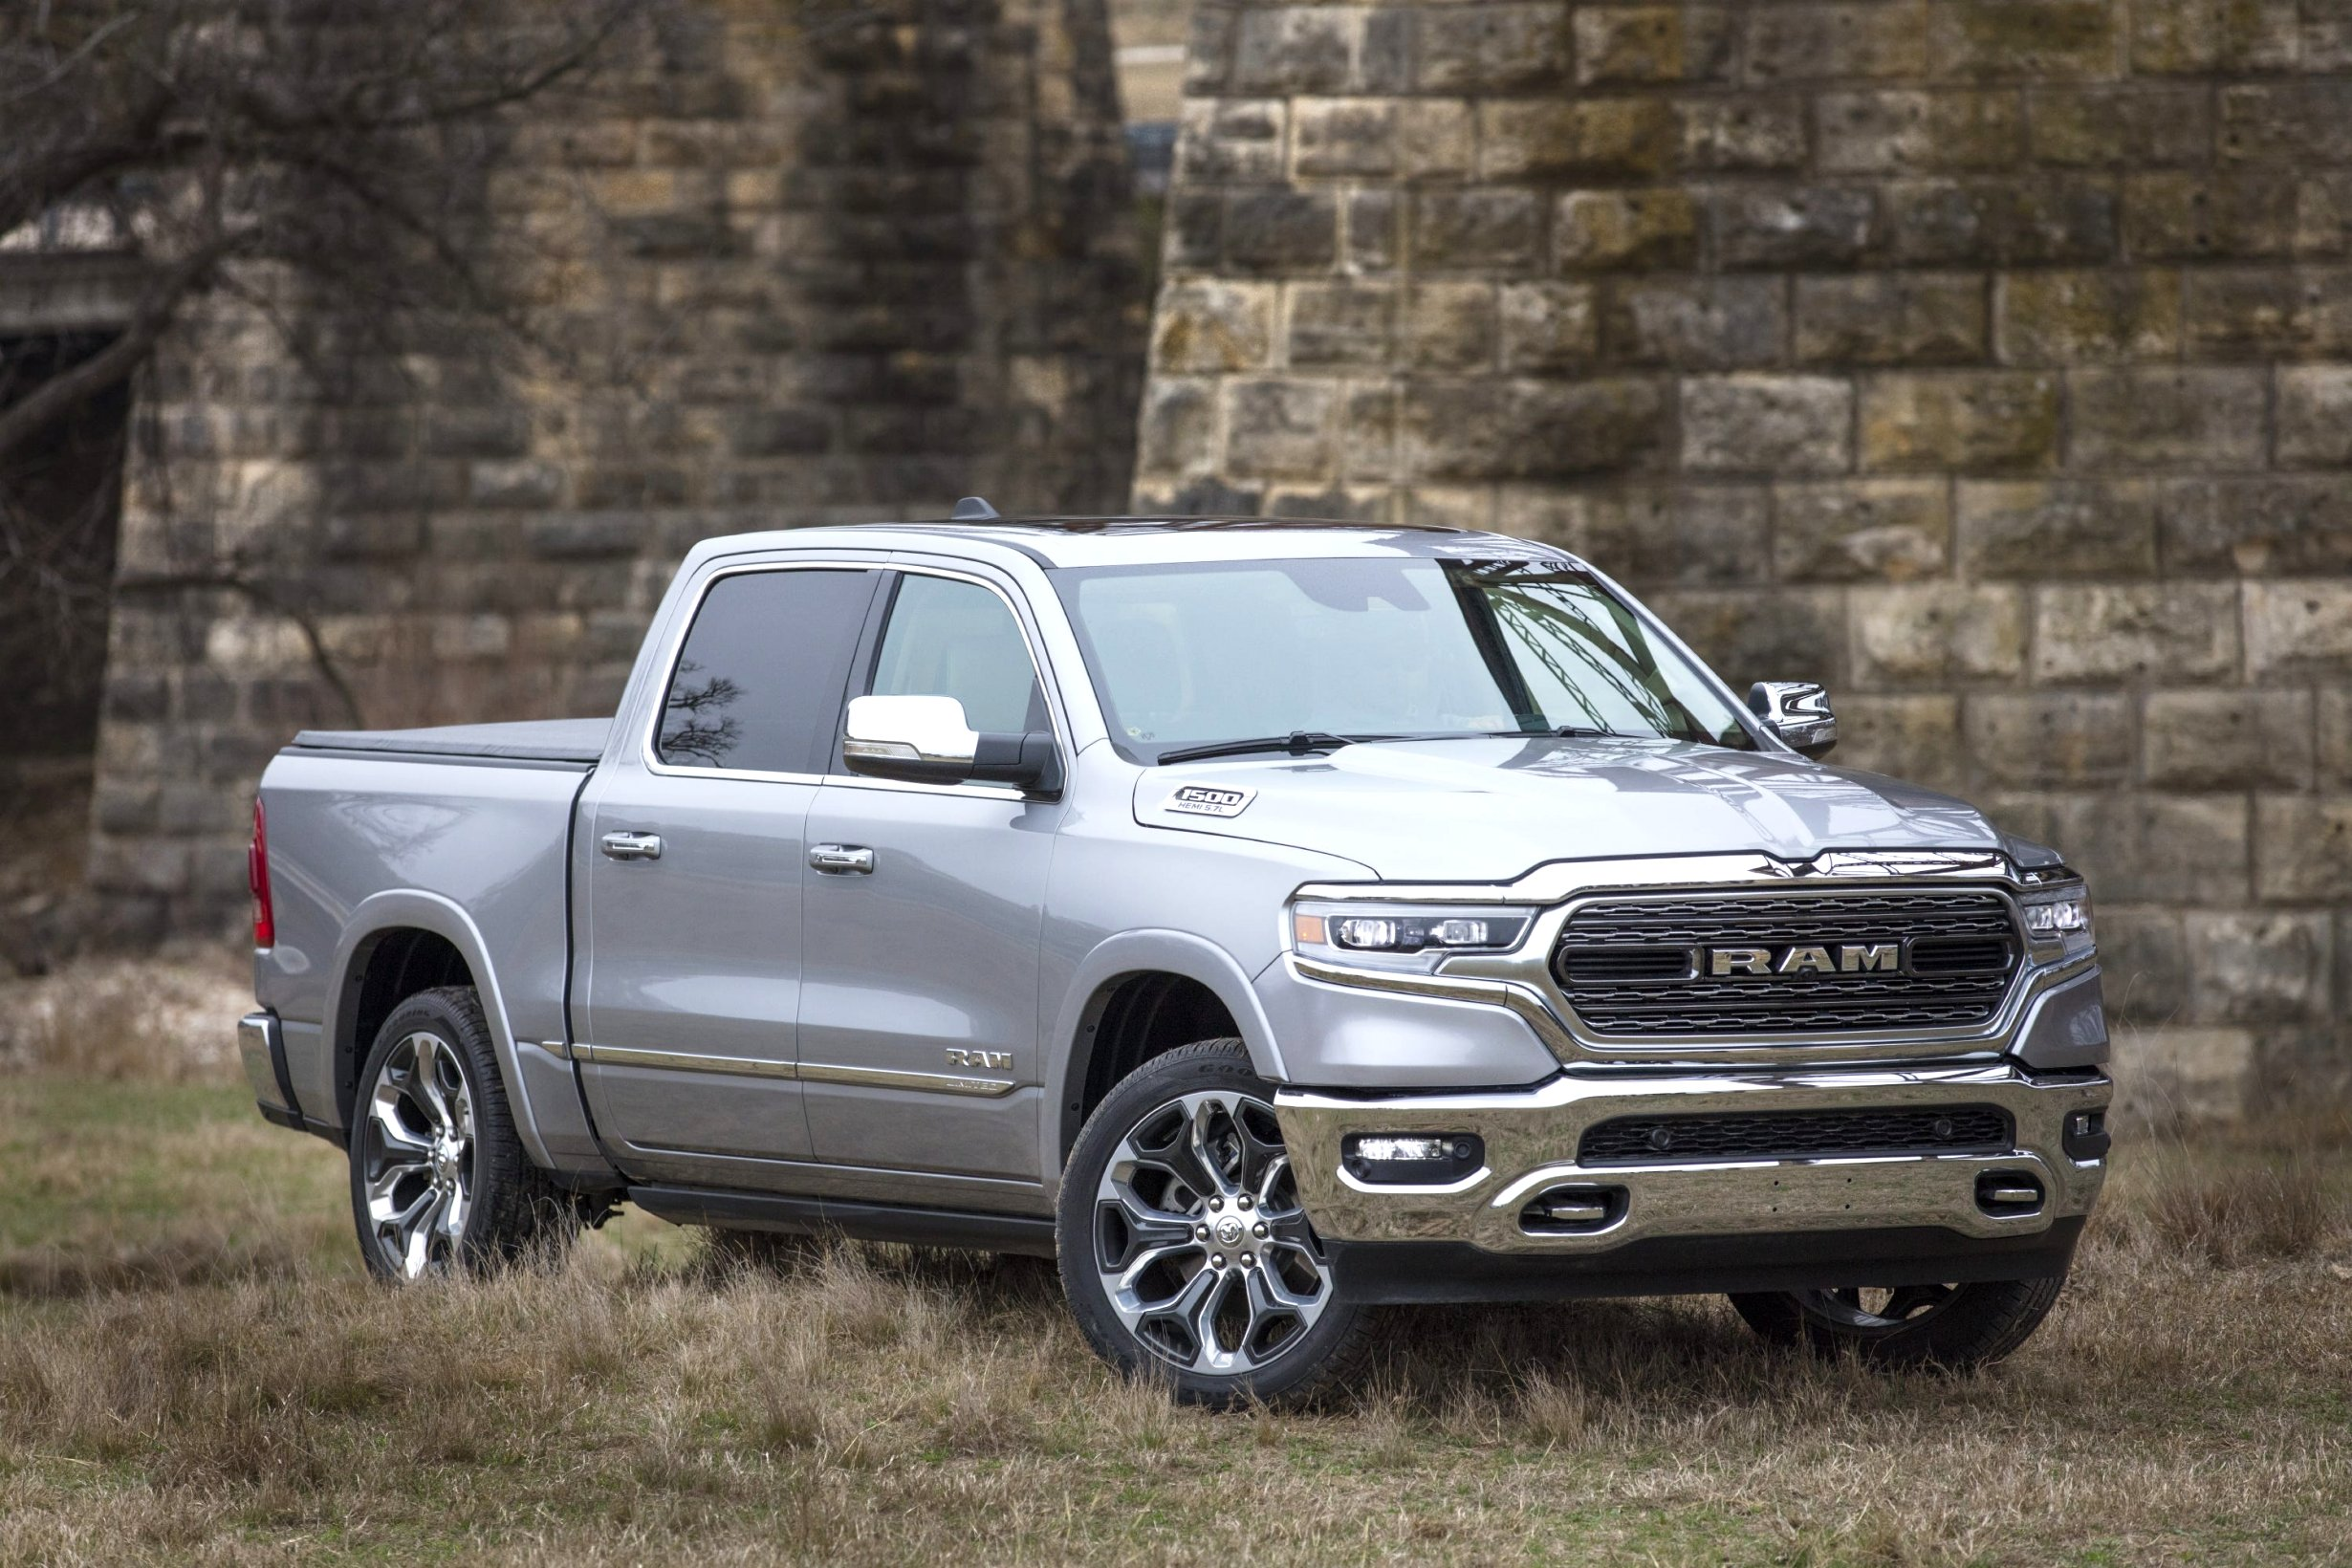 2020 dodge ram images Release Date and Concept